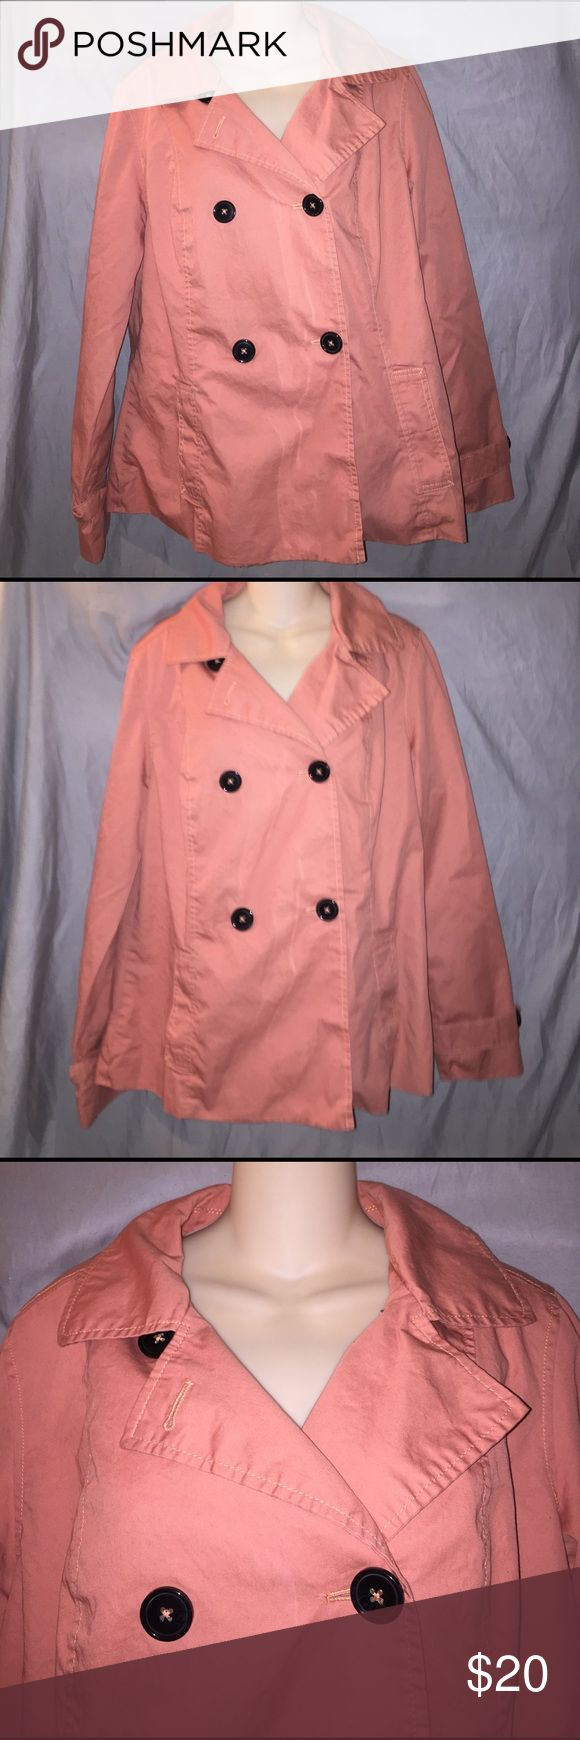 Adorable Spring peacoat style jacket Coral peacoat style with black buttons. Spring jacket Merona Jackets & Coats